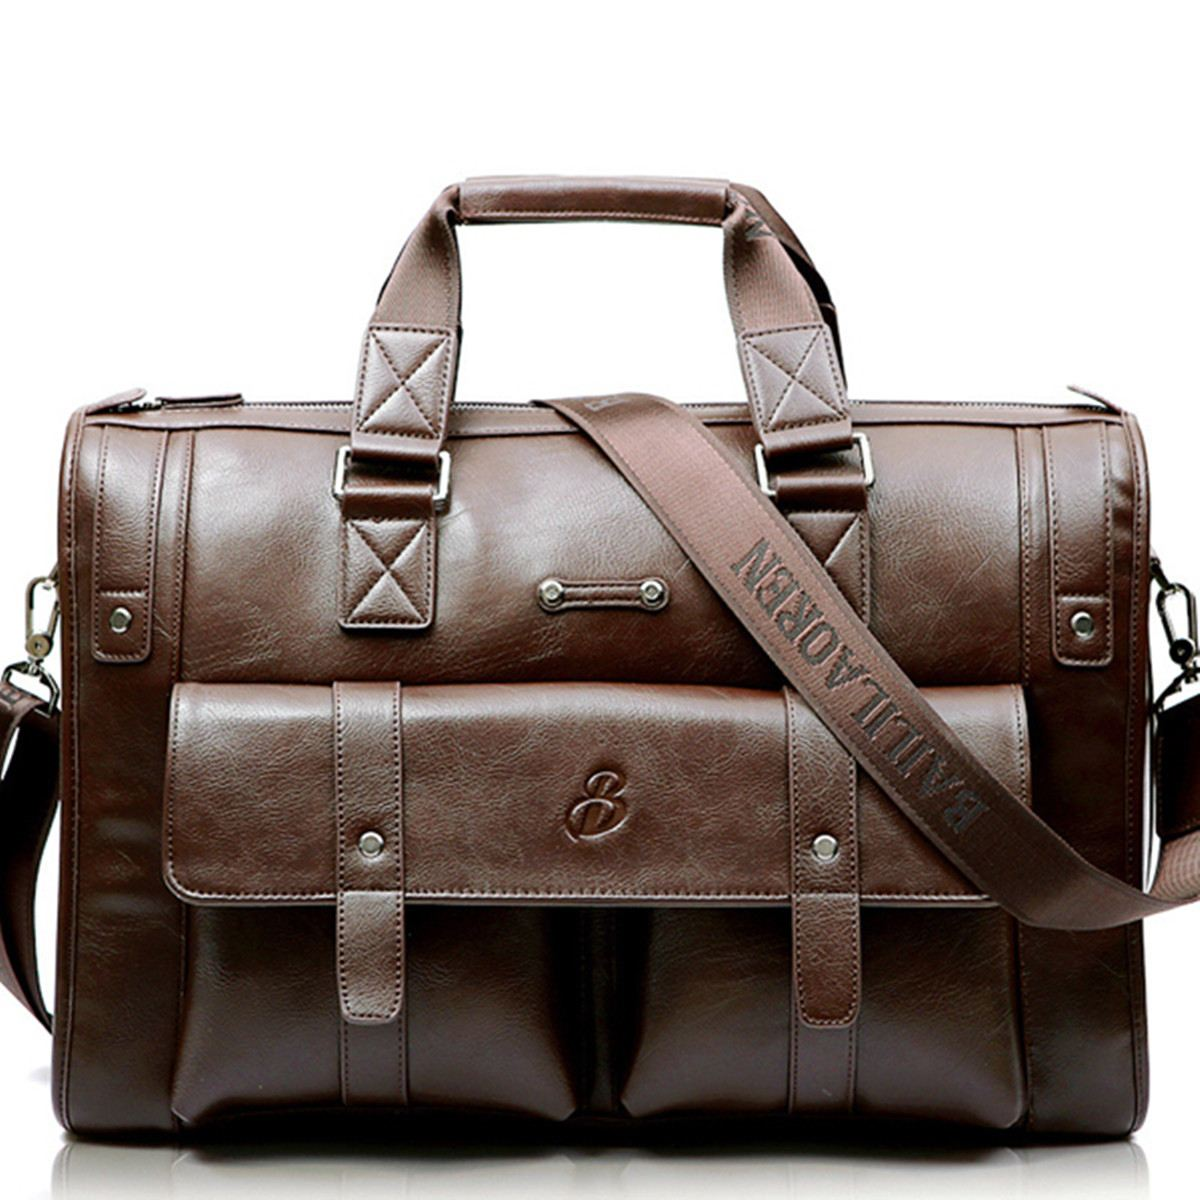 Men Leather Black Briefcase Business Handbag Messenger Bags Male Vintage Shoulder Bag Men's Large Laptop Travel Bags